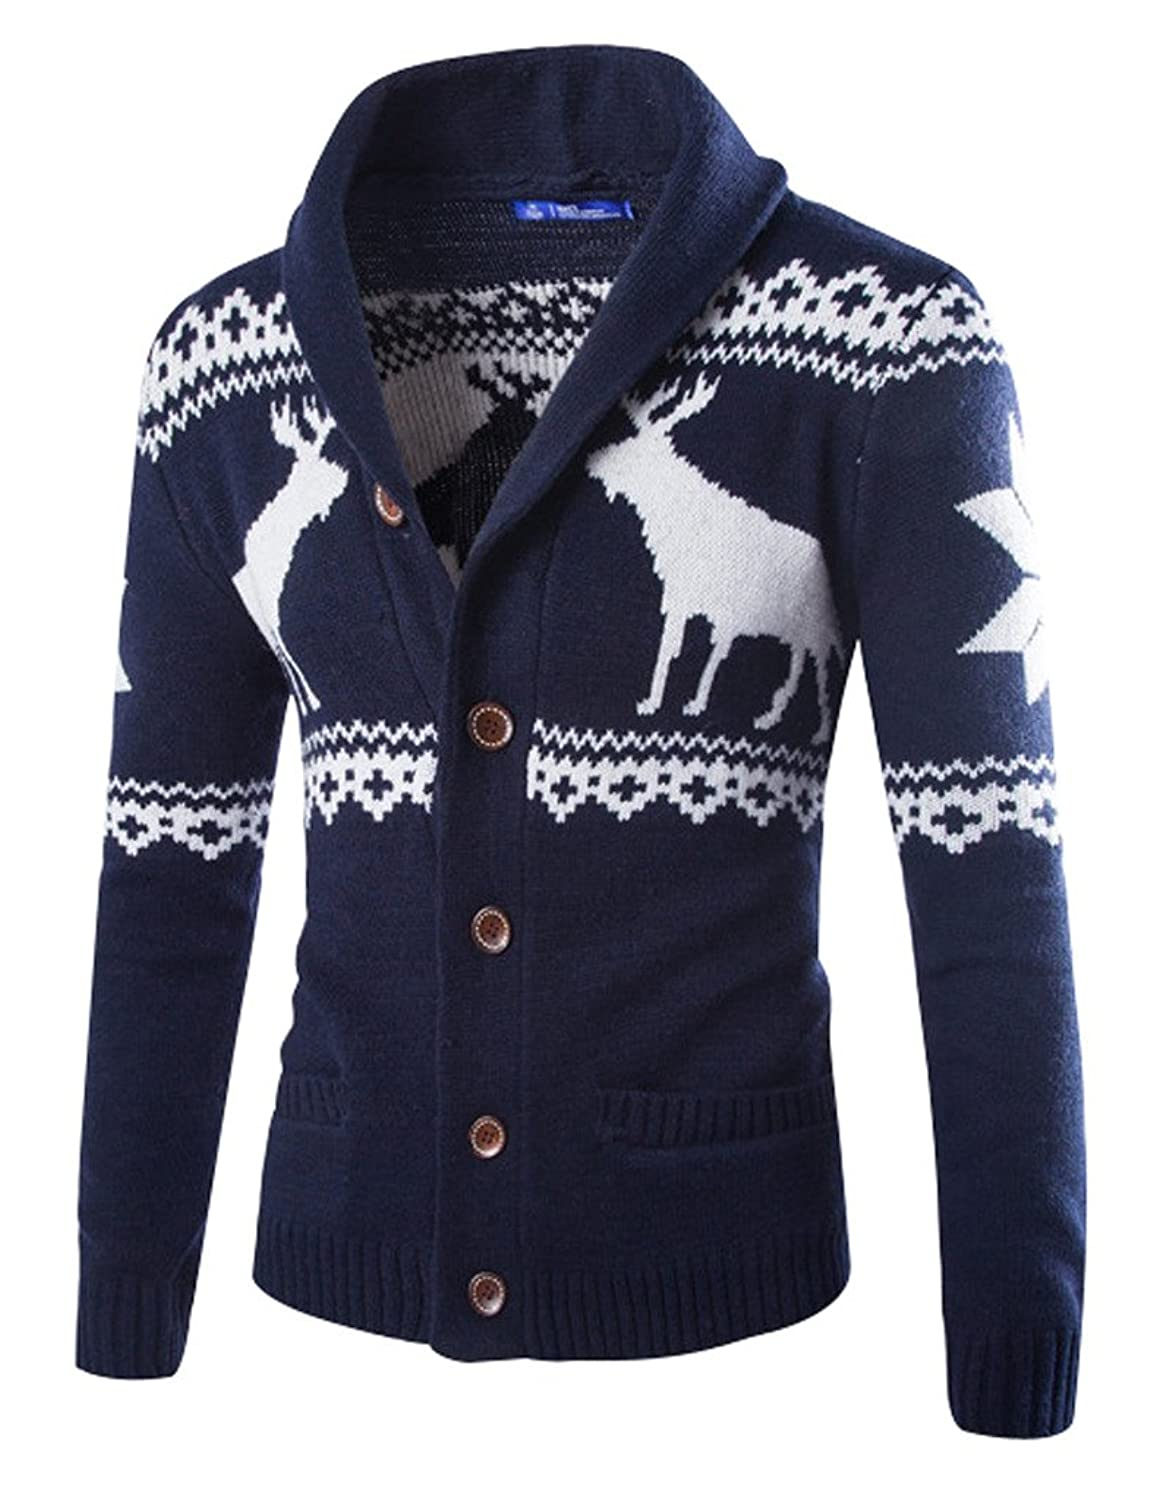 Youlee Men's Deer Printing Christmas Cardigan Knitted Sweater